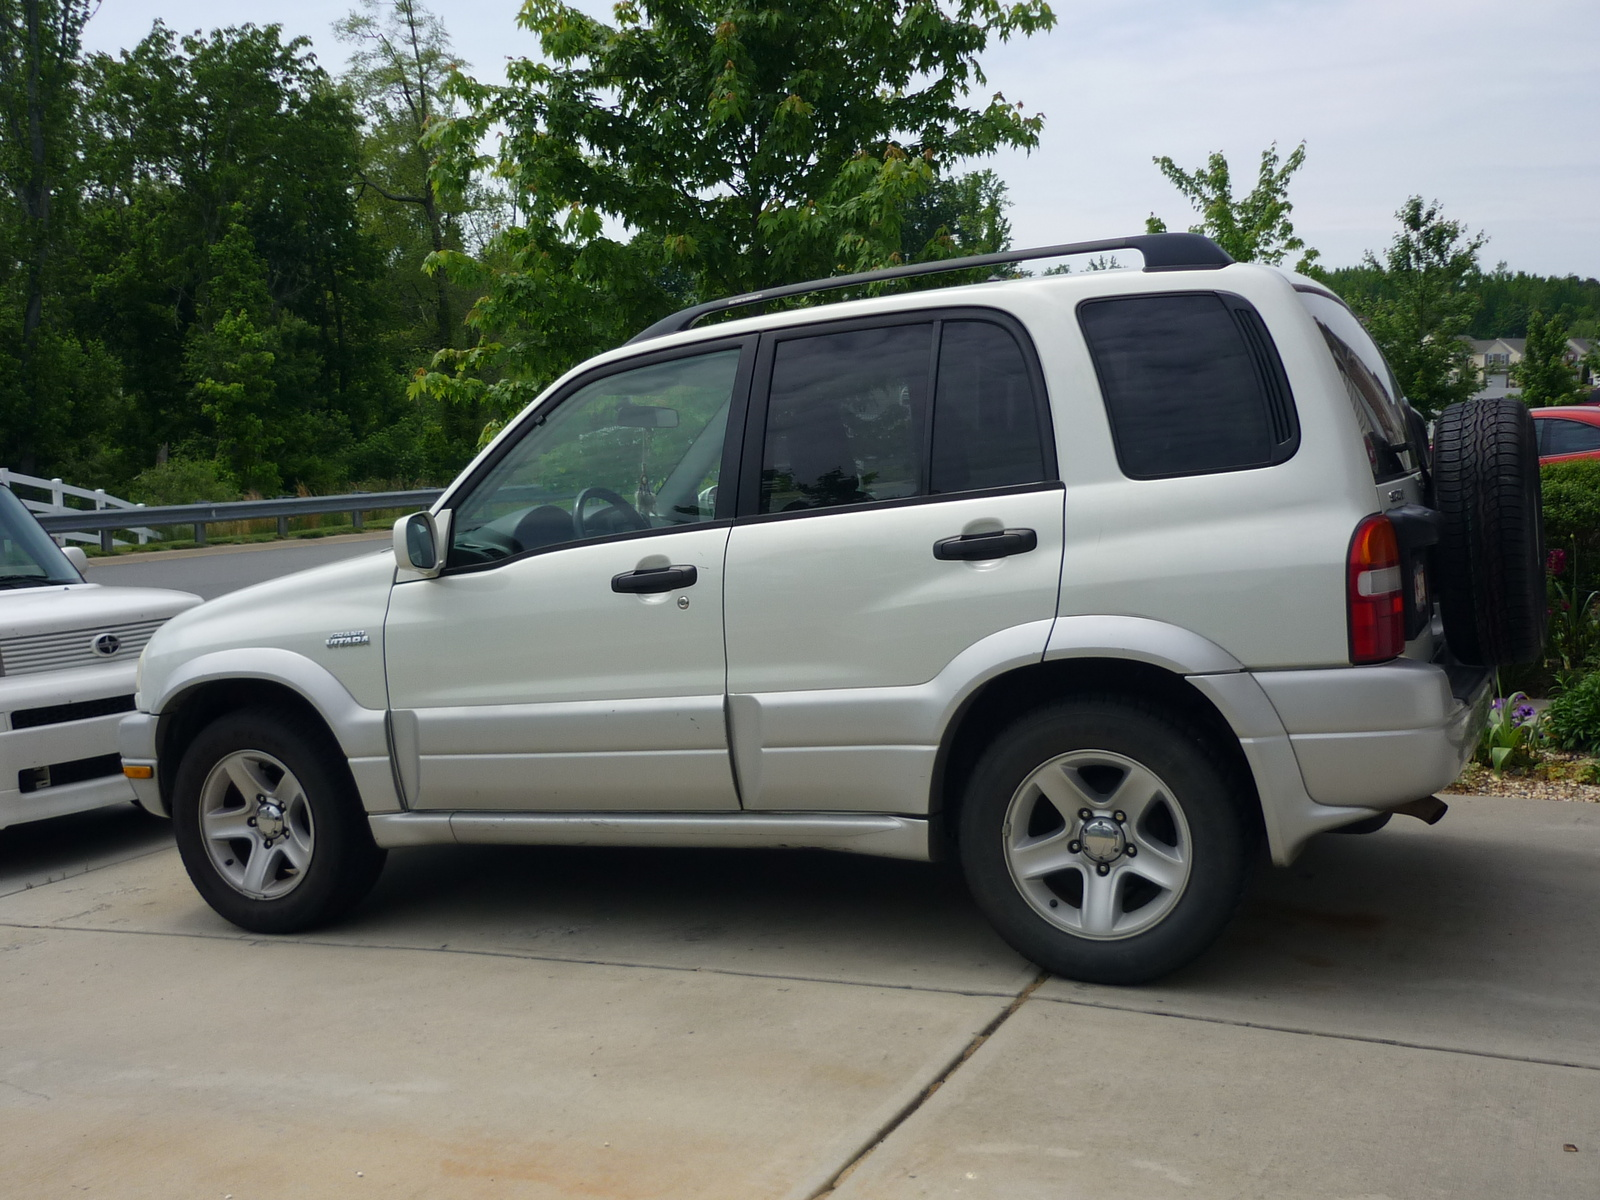 Picture of 2003 Suzuki Grand Vitara 4 Dr STD SUV